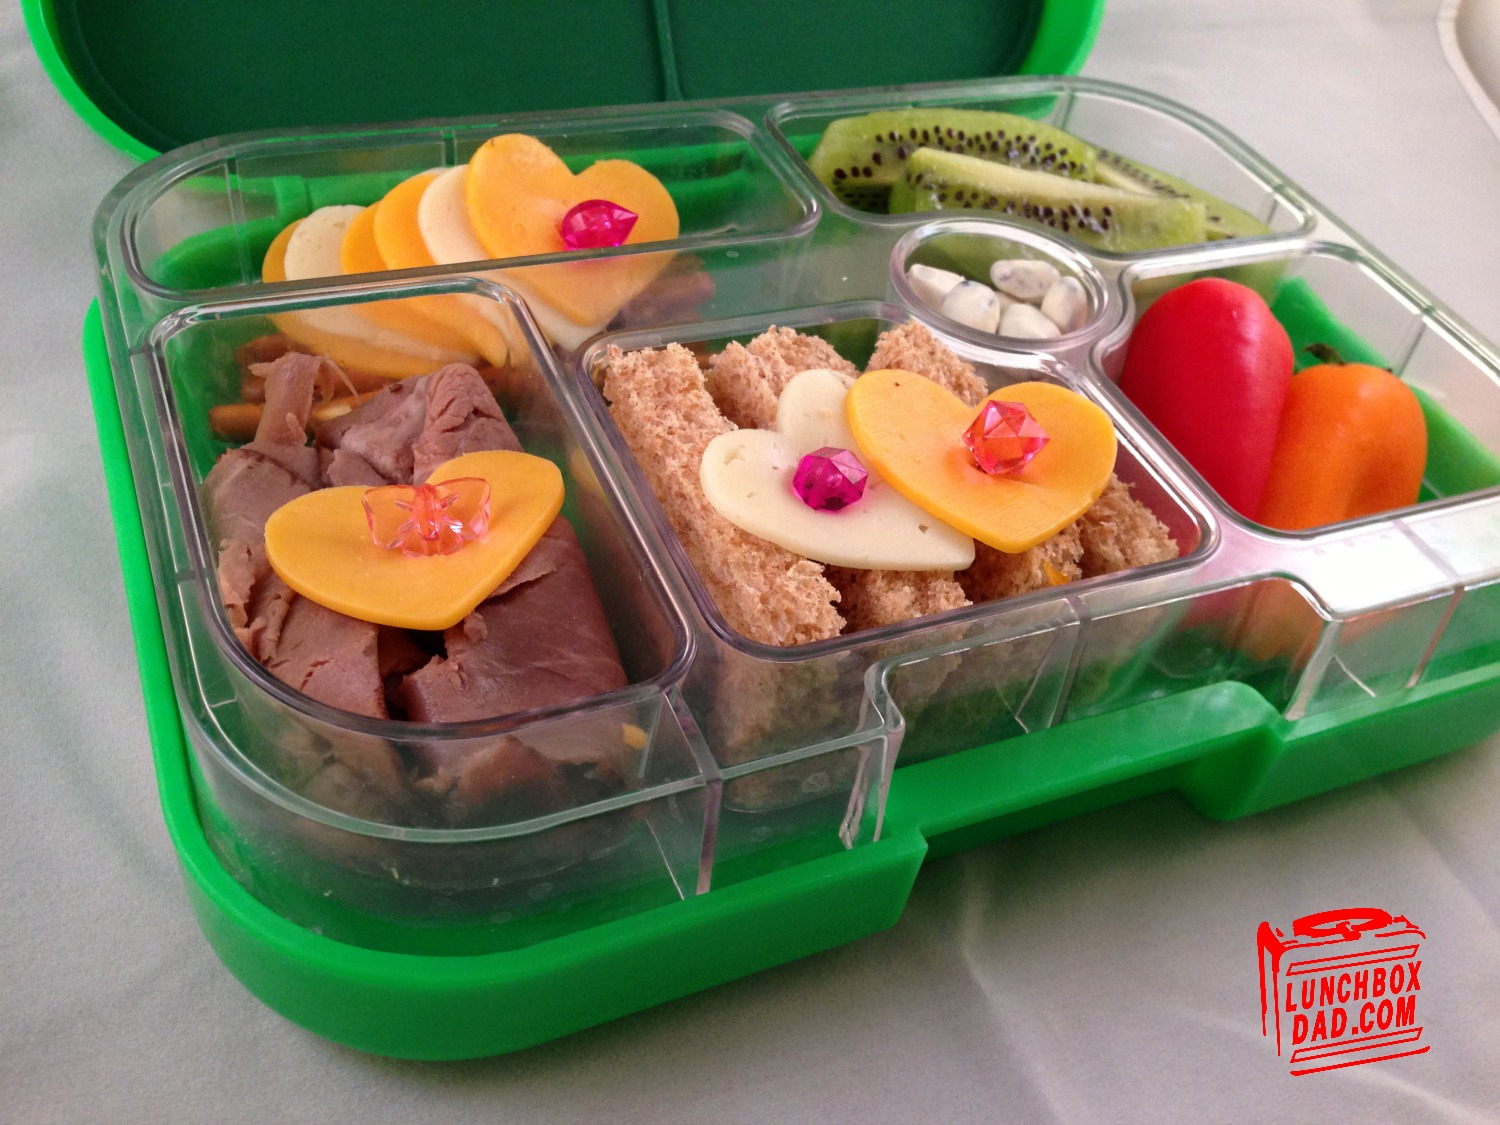 BPA-free, bento-style meal and snack containers. 3 or 4 compartments. Insulated coolers and dip containers too. Make healthy Lunchables for kids and adults.